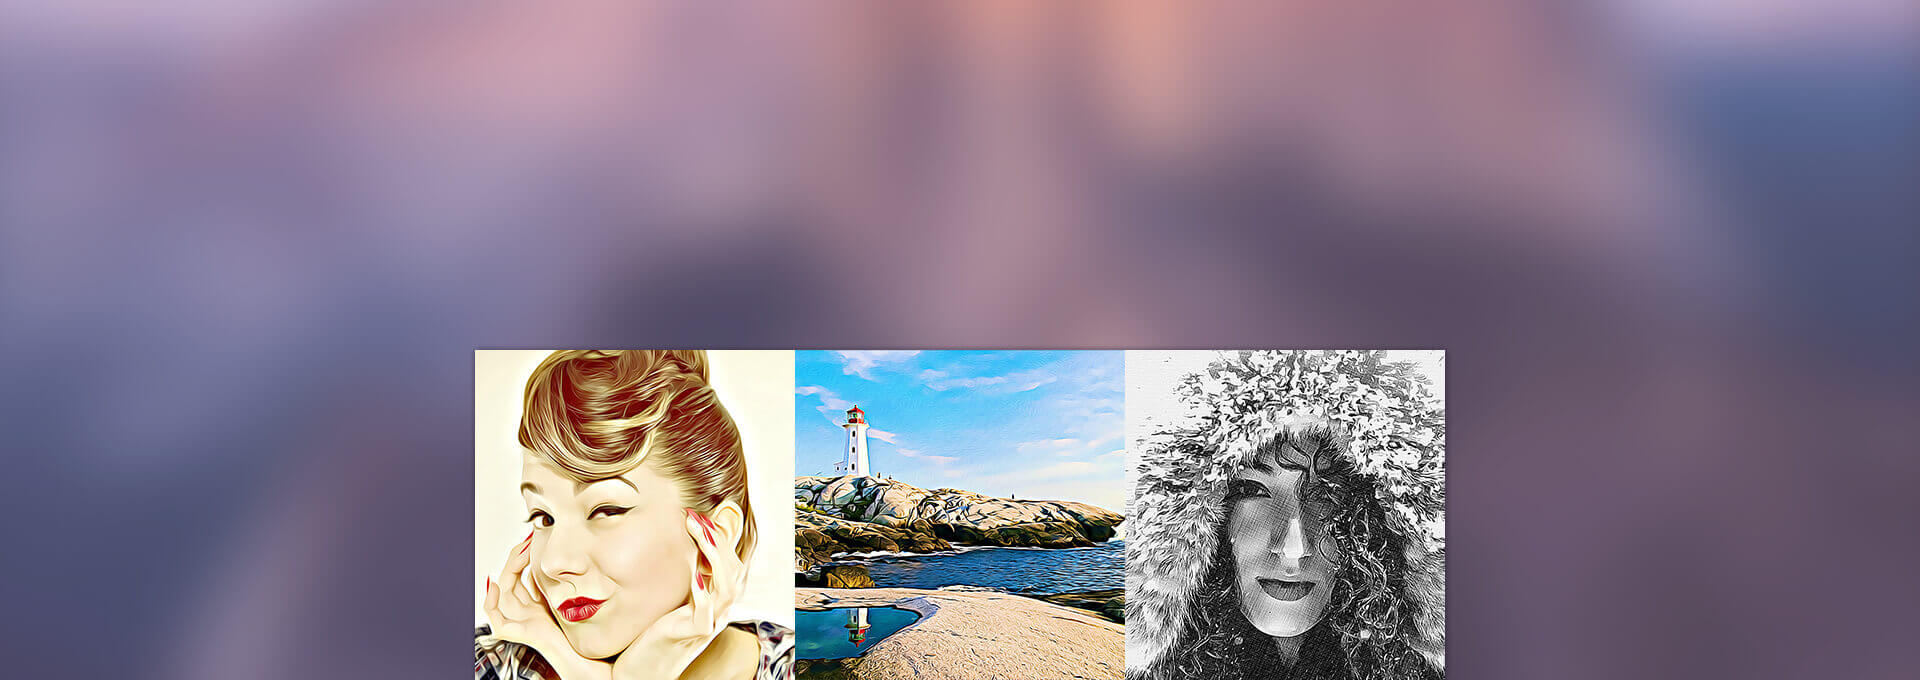 photo editor online photo editing and collage maker introducing our new digital art effects